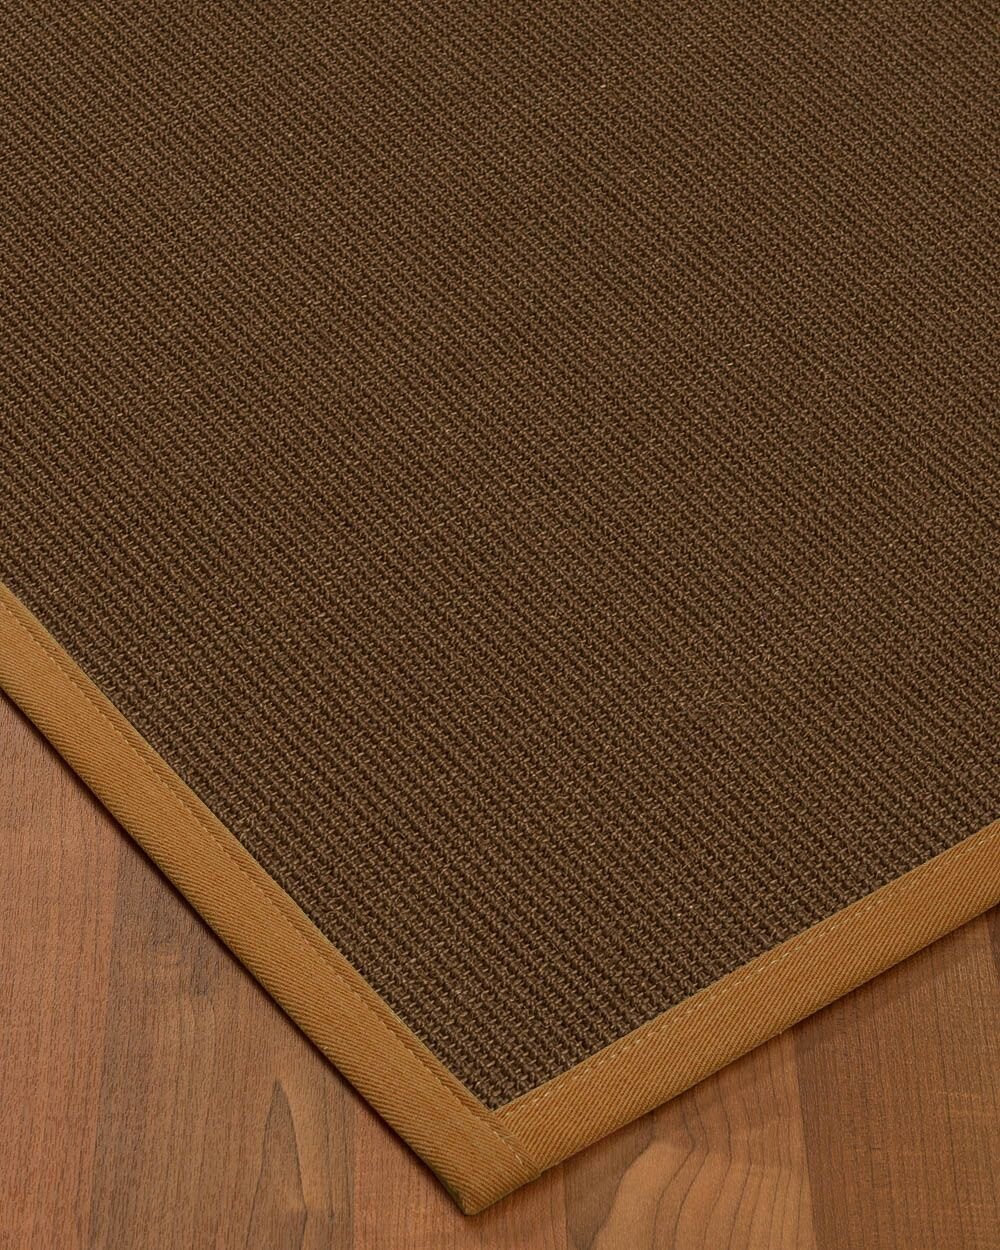 Heider Border Hand-Woven Brown/Sienna Area Rug Rug Size: Rectangle 8' x 10', Rug Pad Included: Yes